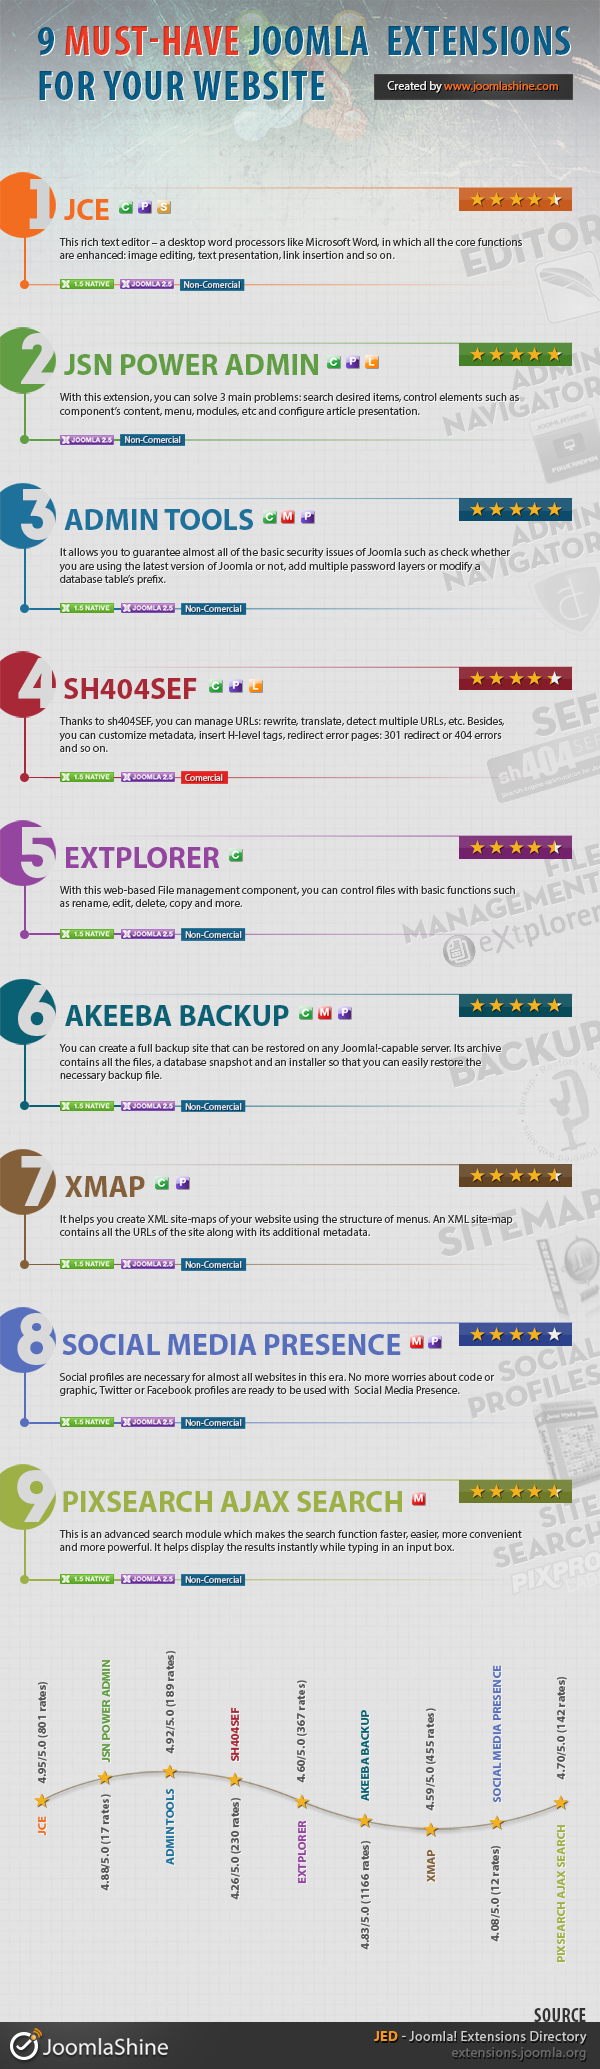 Infographic - 9 must-have Joomla 2.5 extesnions for your website